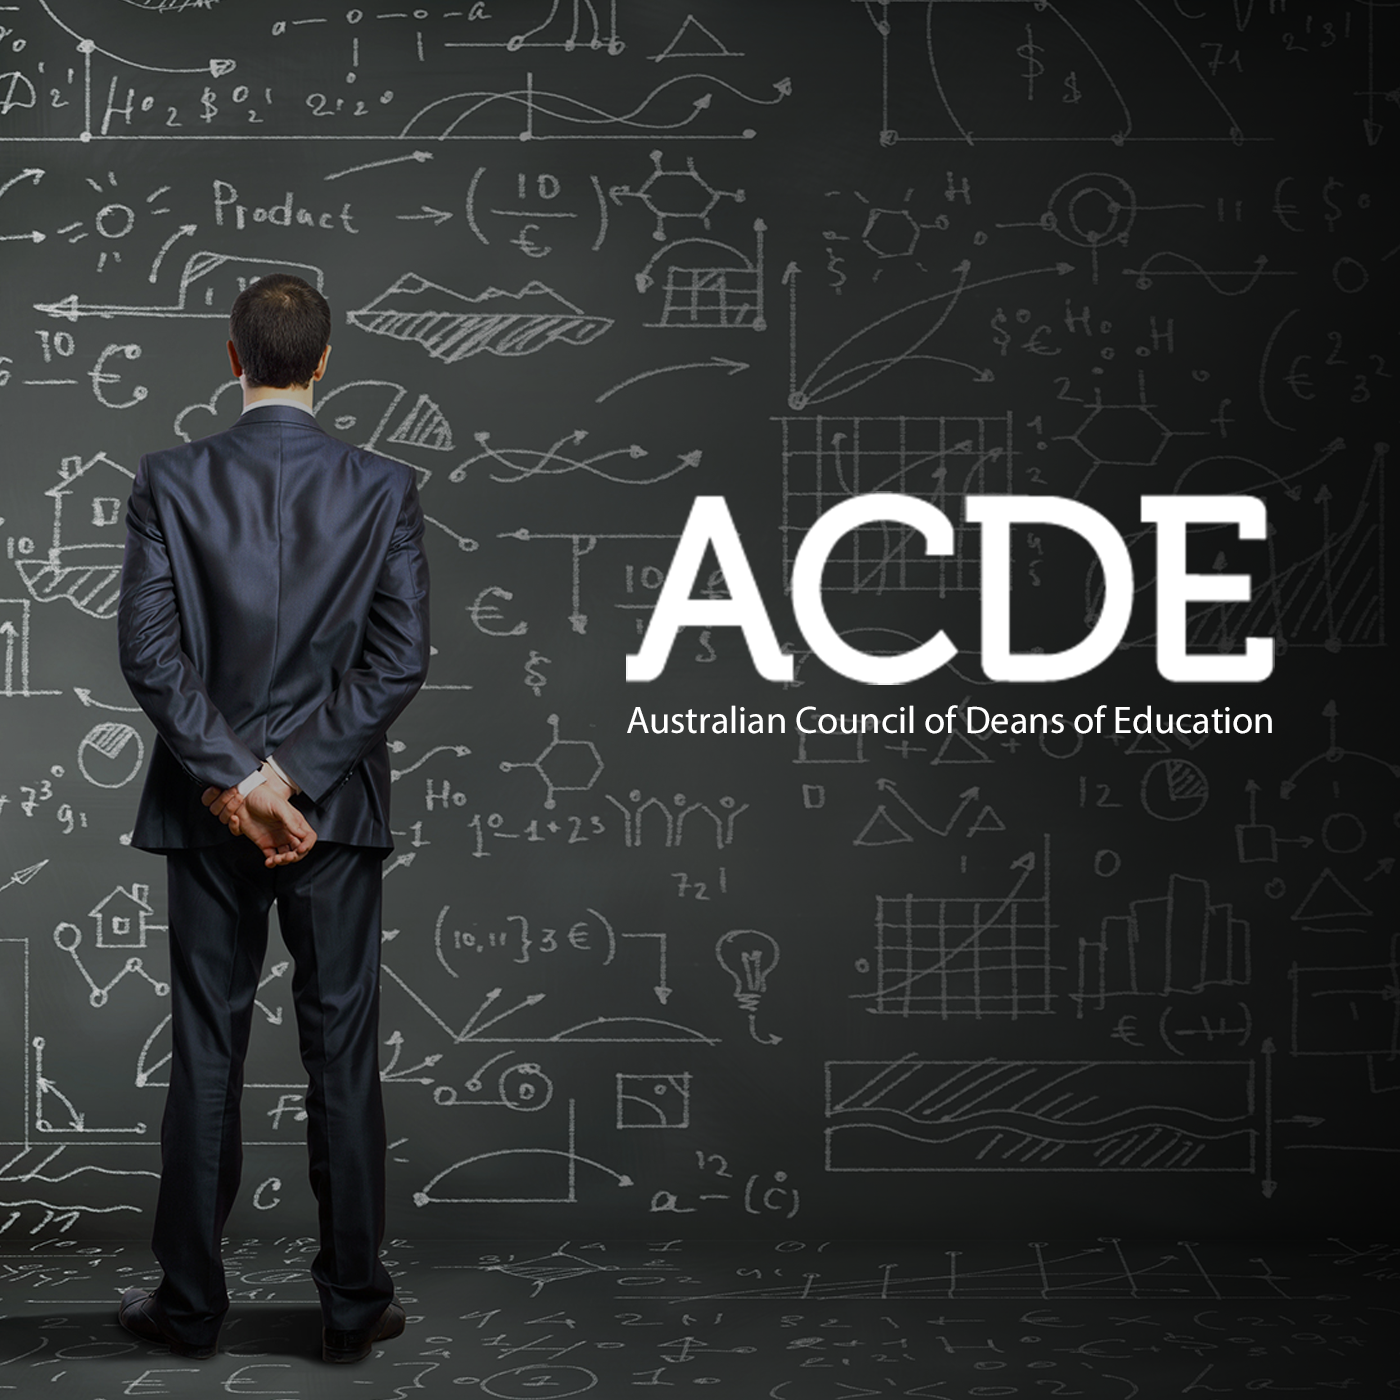 ACDE: Australian Council of Deans of Education